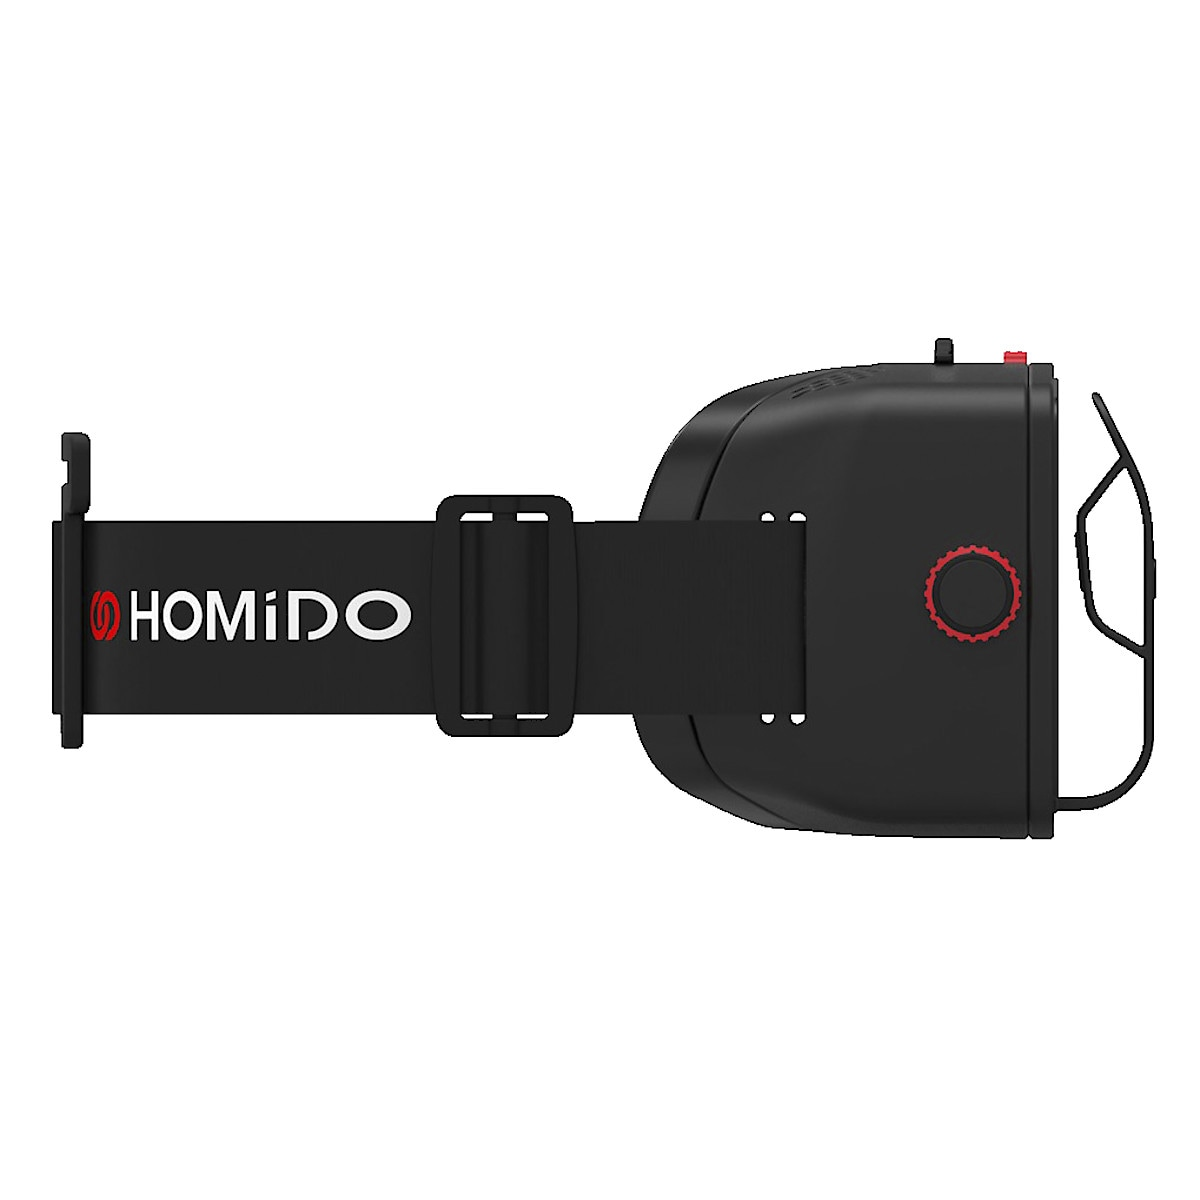 Homido VR-brille for smartphone